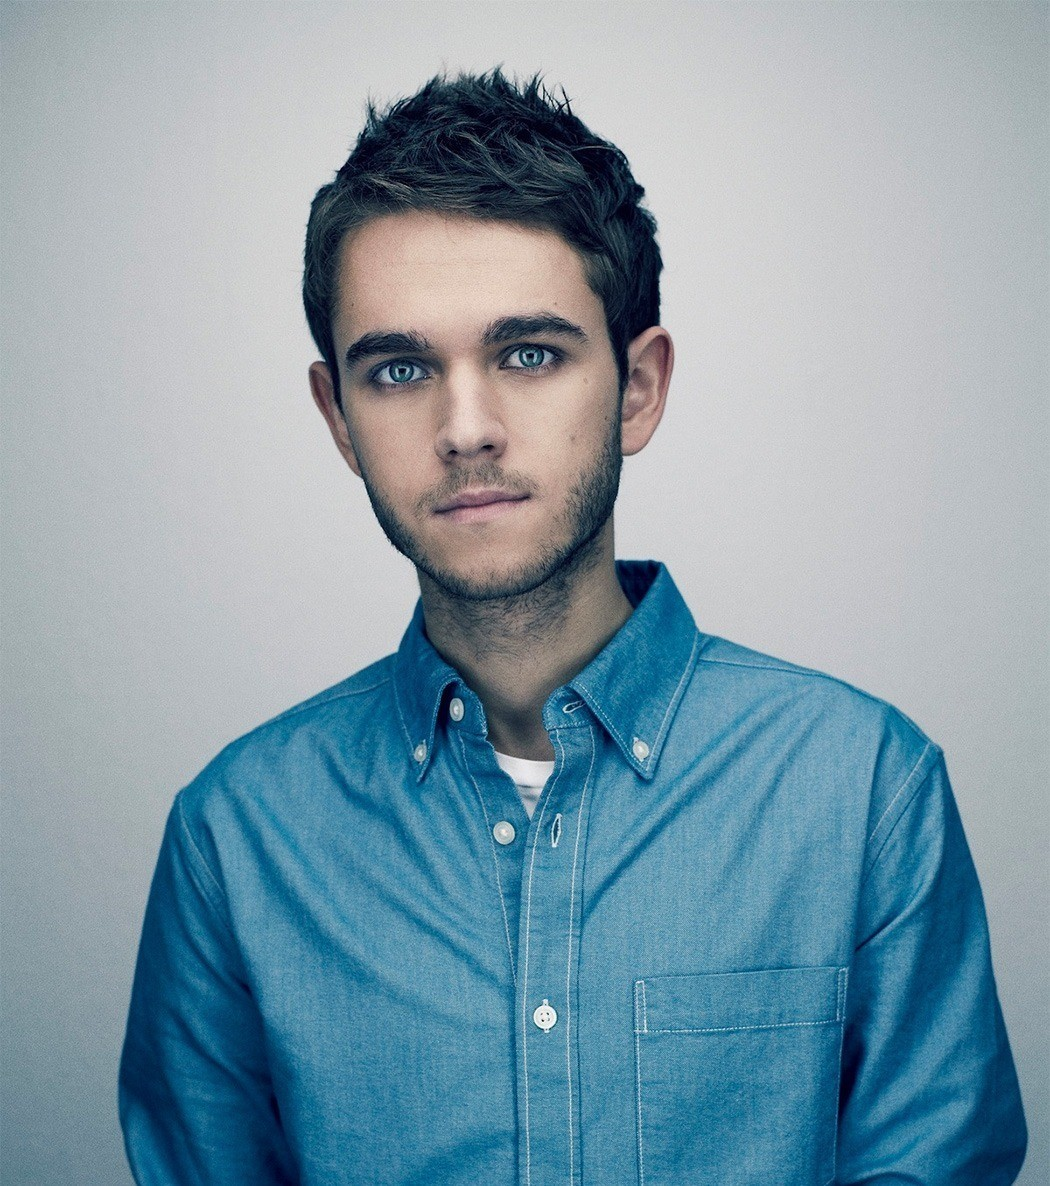 https://cdn.demos.pixelgrade.com/wp-content/uploads/sites/11/2013/10/zedd-featured-image.jpg